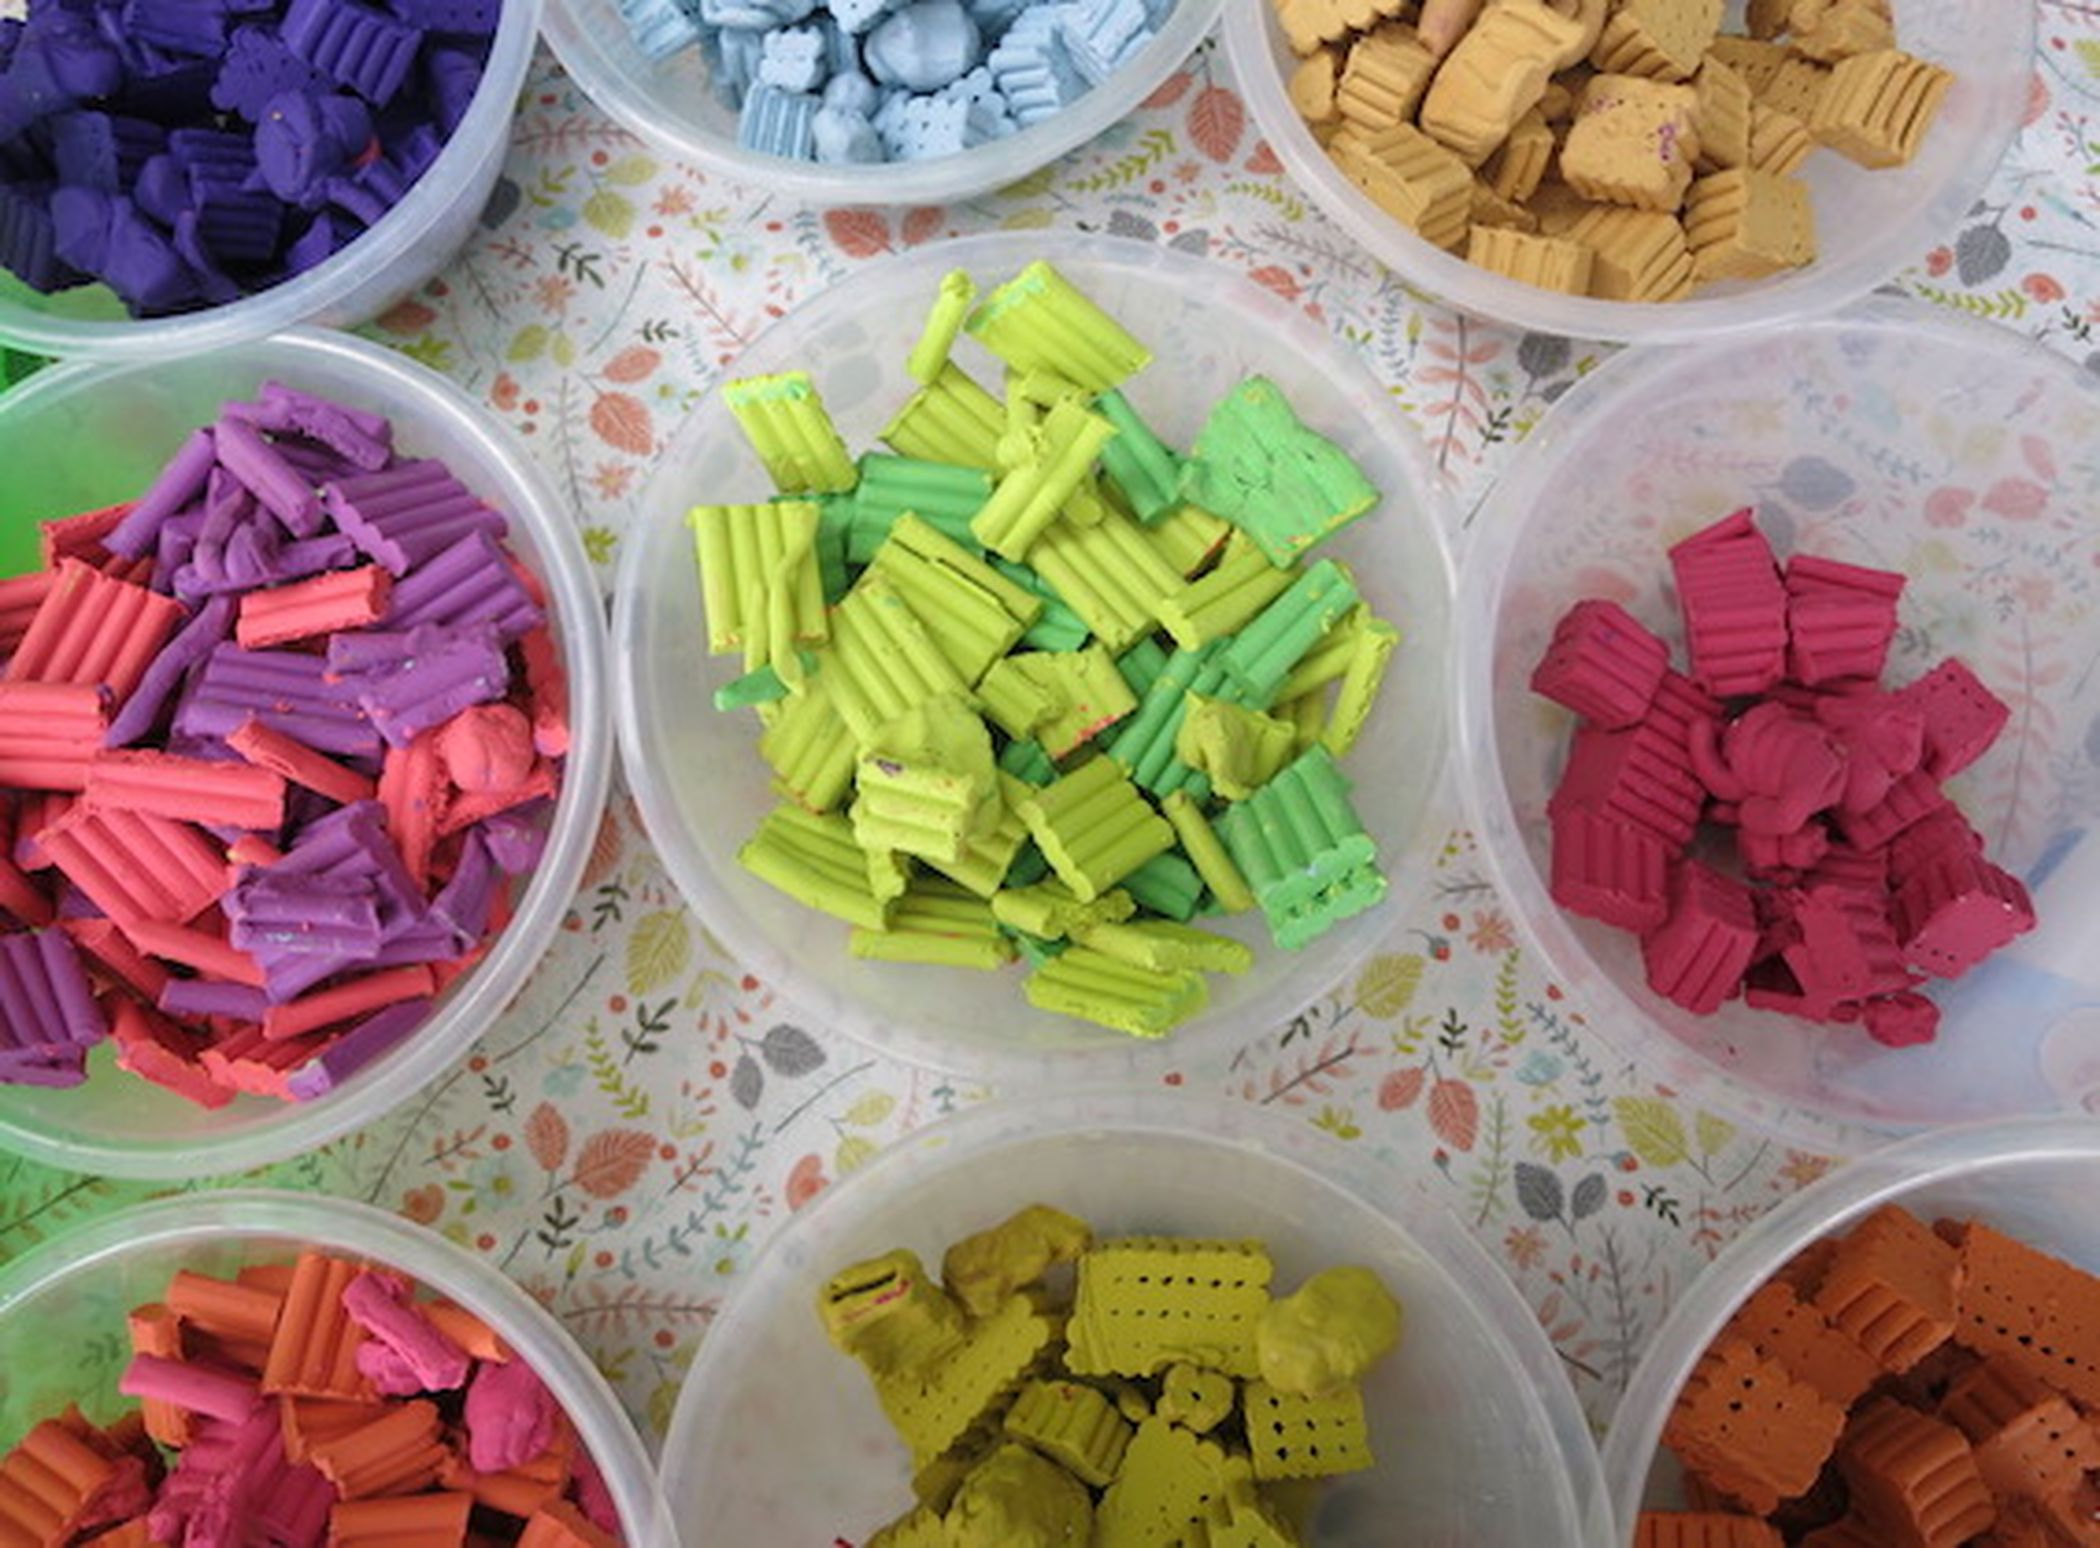 Colourful plasticine to make enchanted realms with